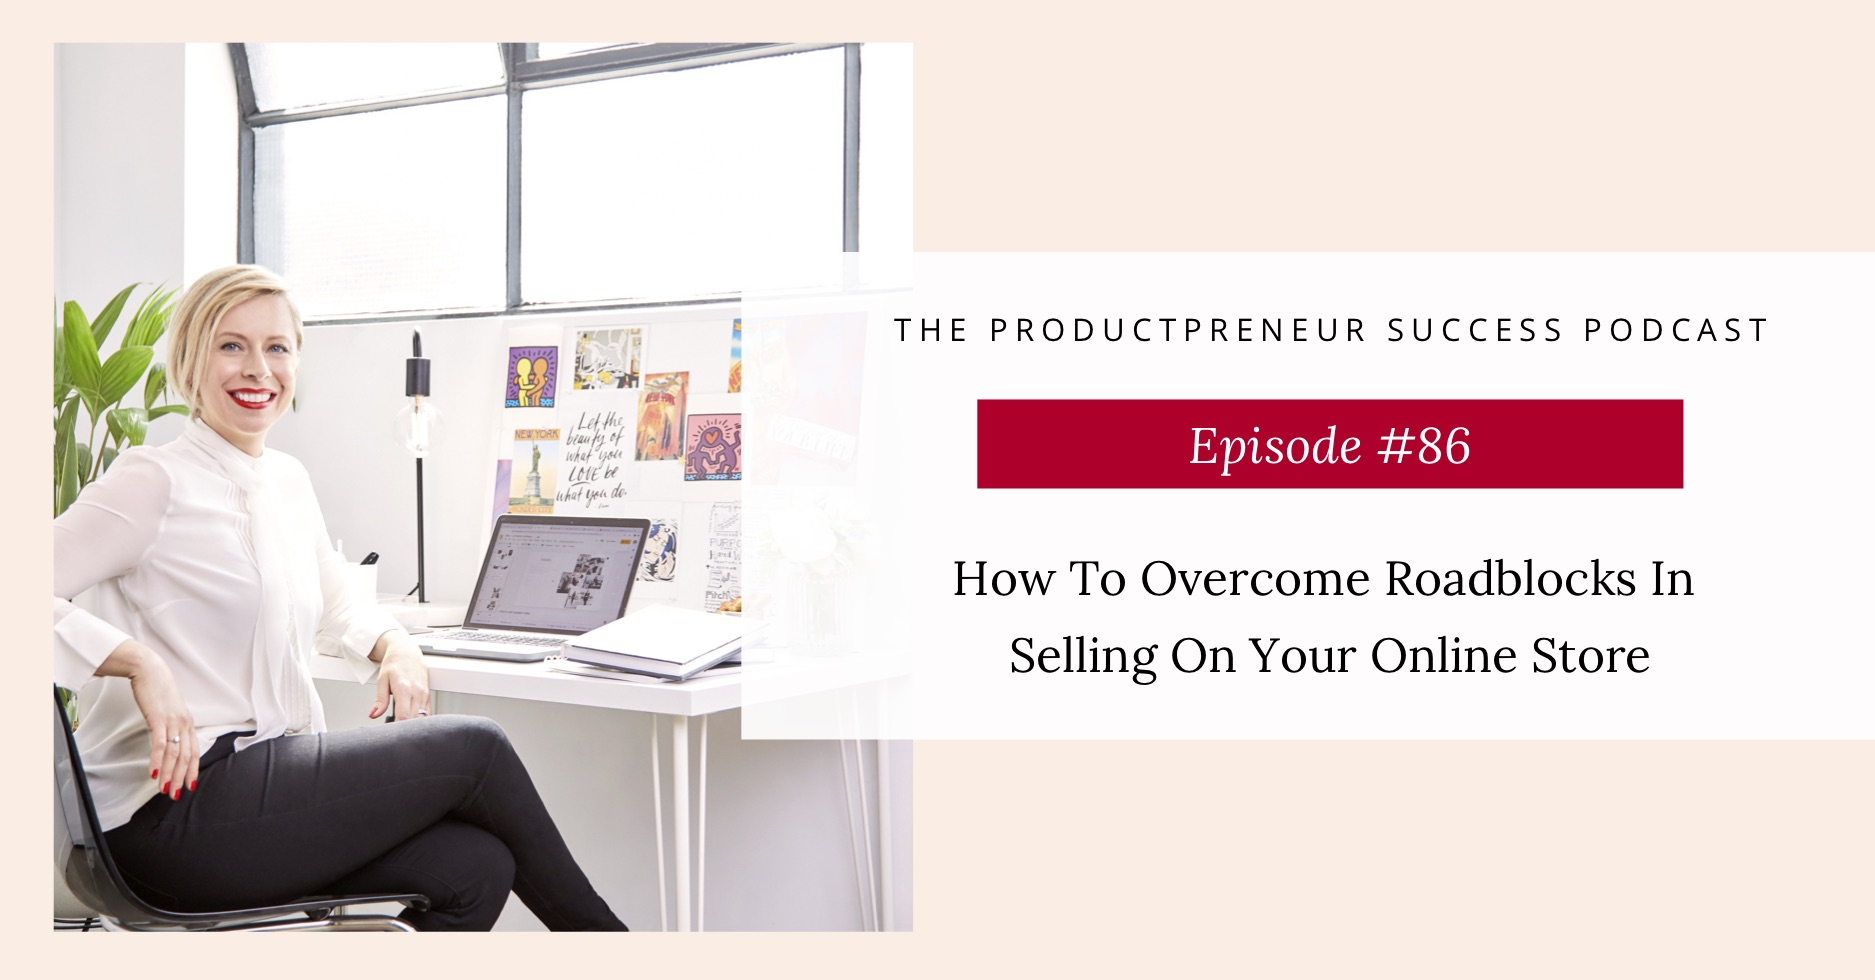 How to overcome roadblocks when selling on your online store